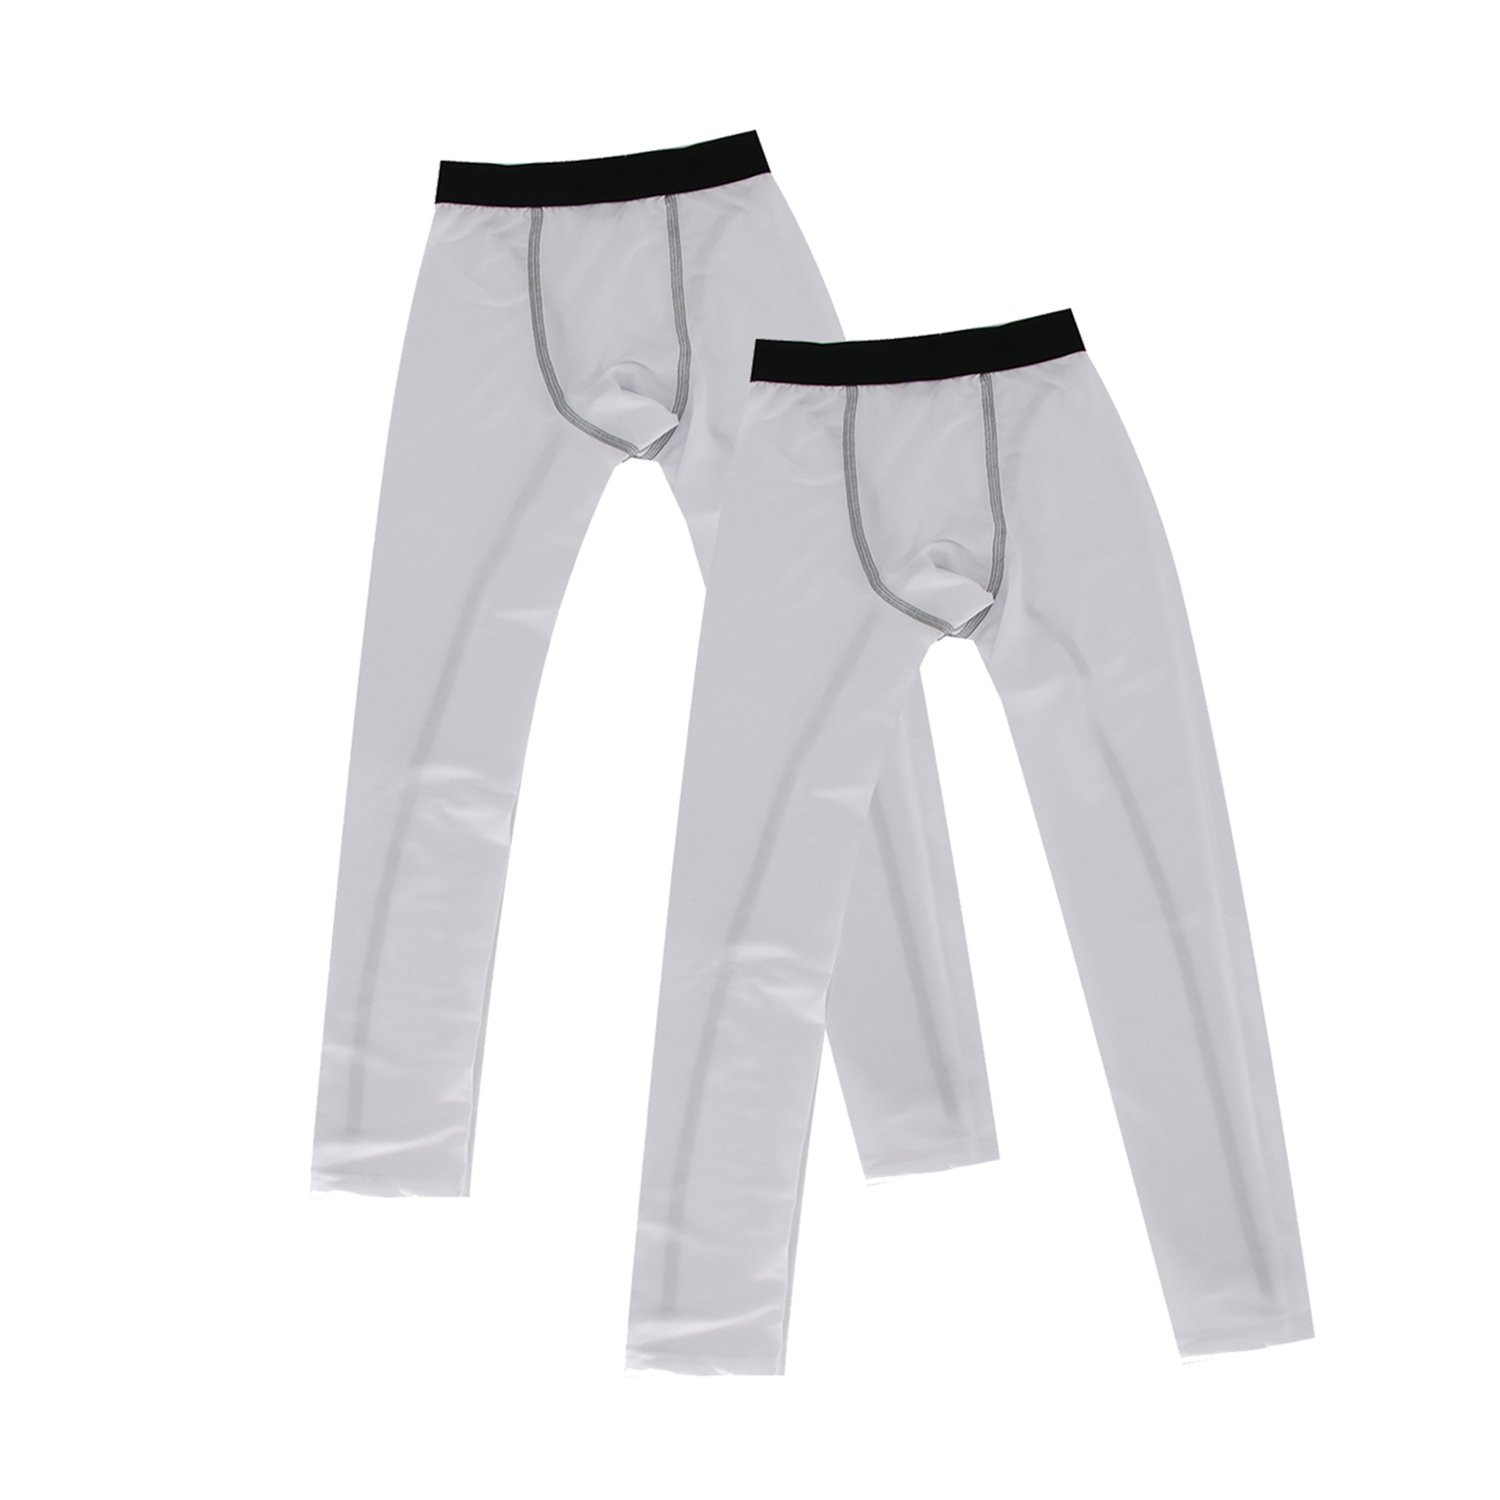 Minghe Boys 2 Pack Thermal Underwear Bottoms Base Layer Tights Mositure Wicking